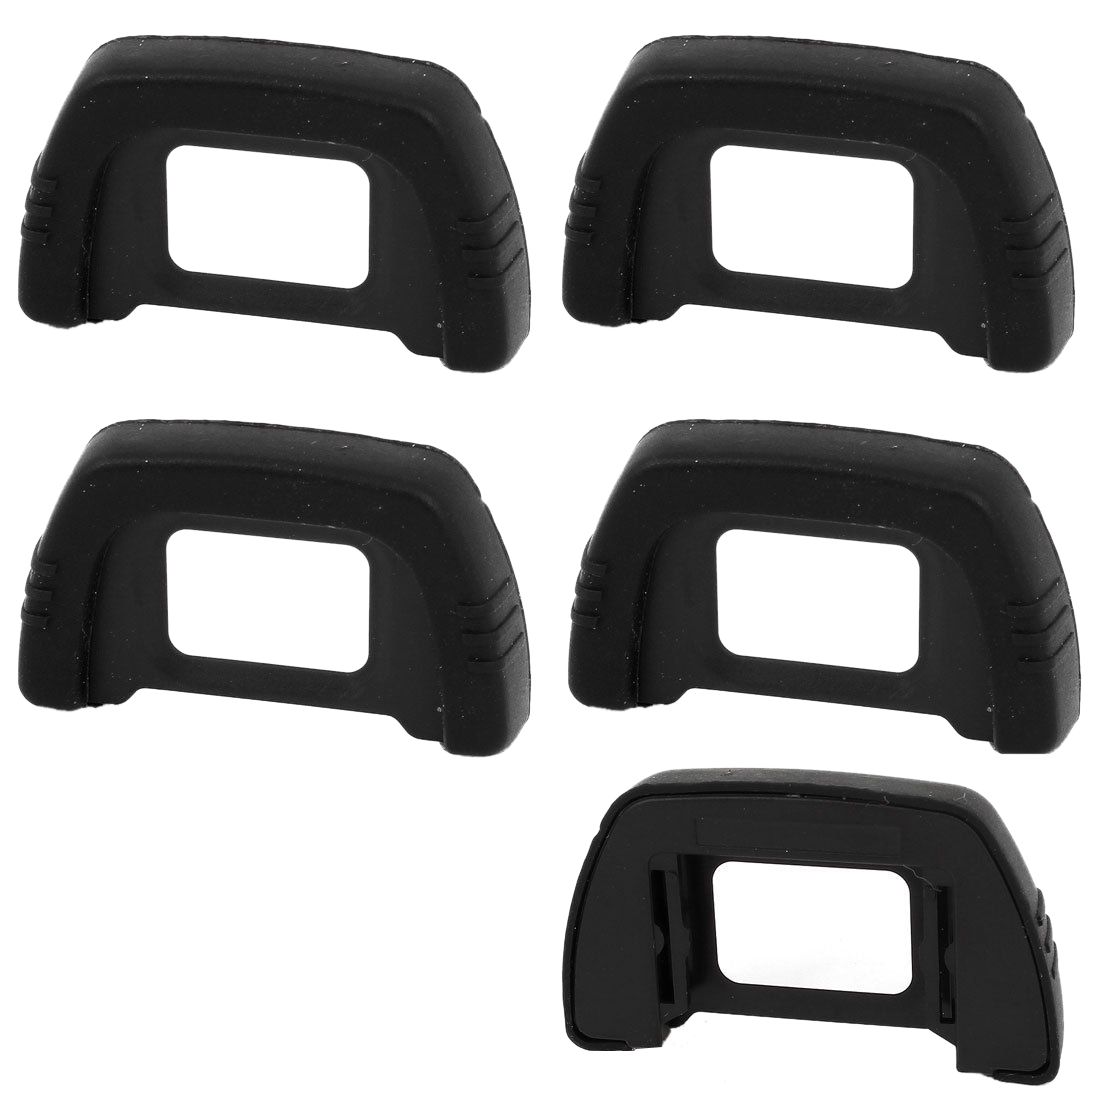 5 pieces DK-21 Viewfinder Eyepiece Camera Eye Nikon D7000 Digital SLR Camera D600 D200 Black